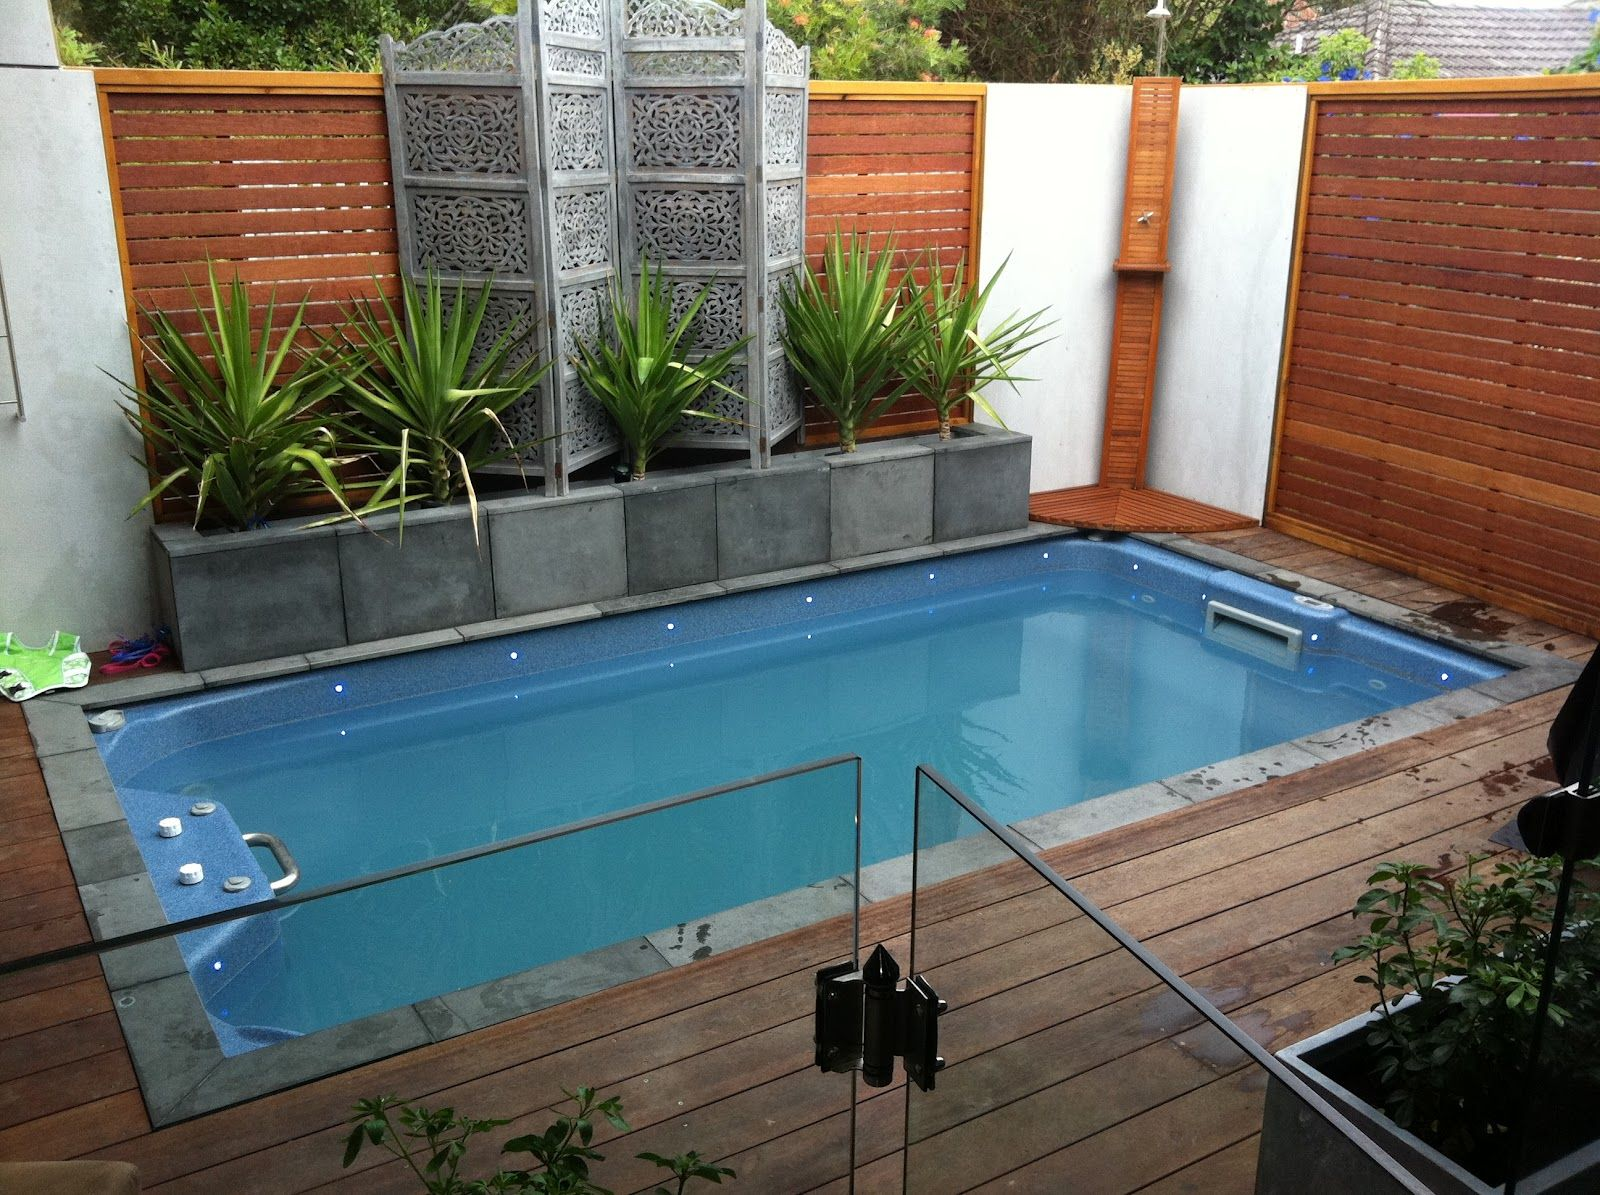 pools for small backyards design ideas pictures remodel and